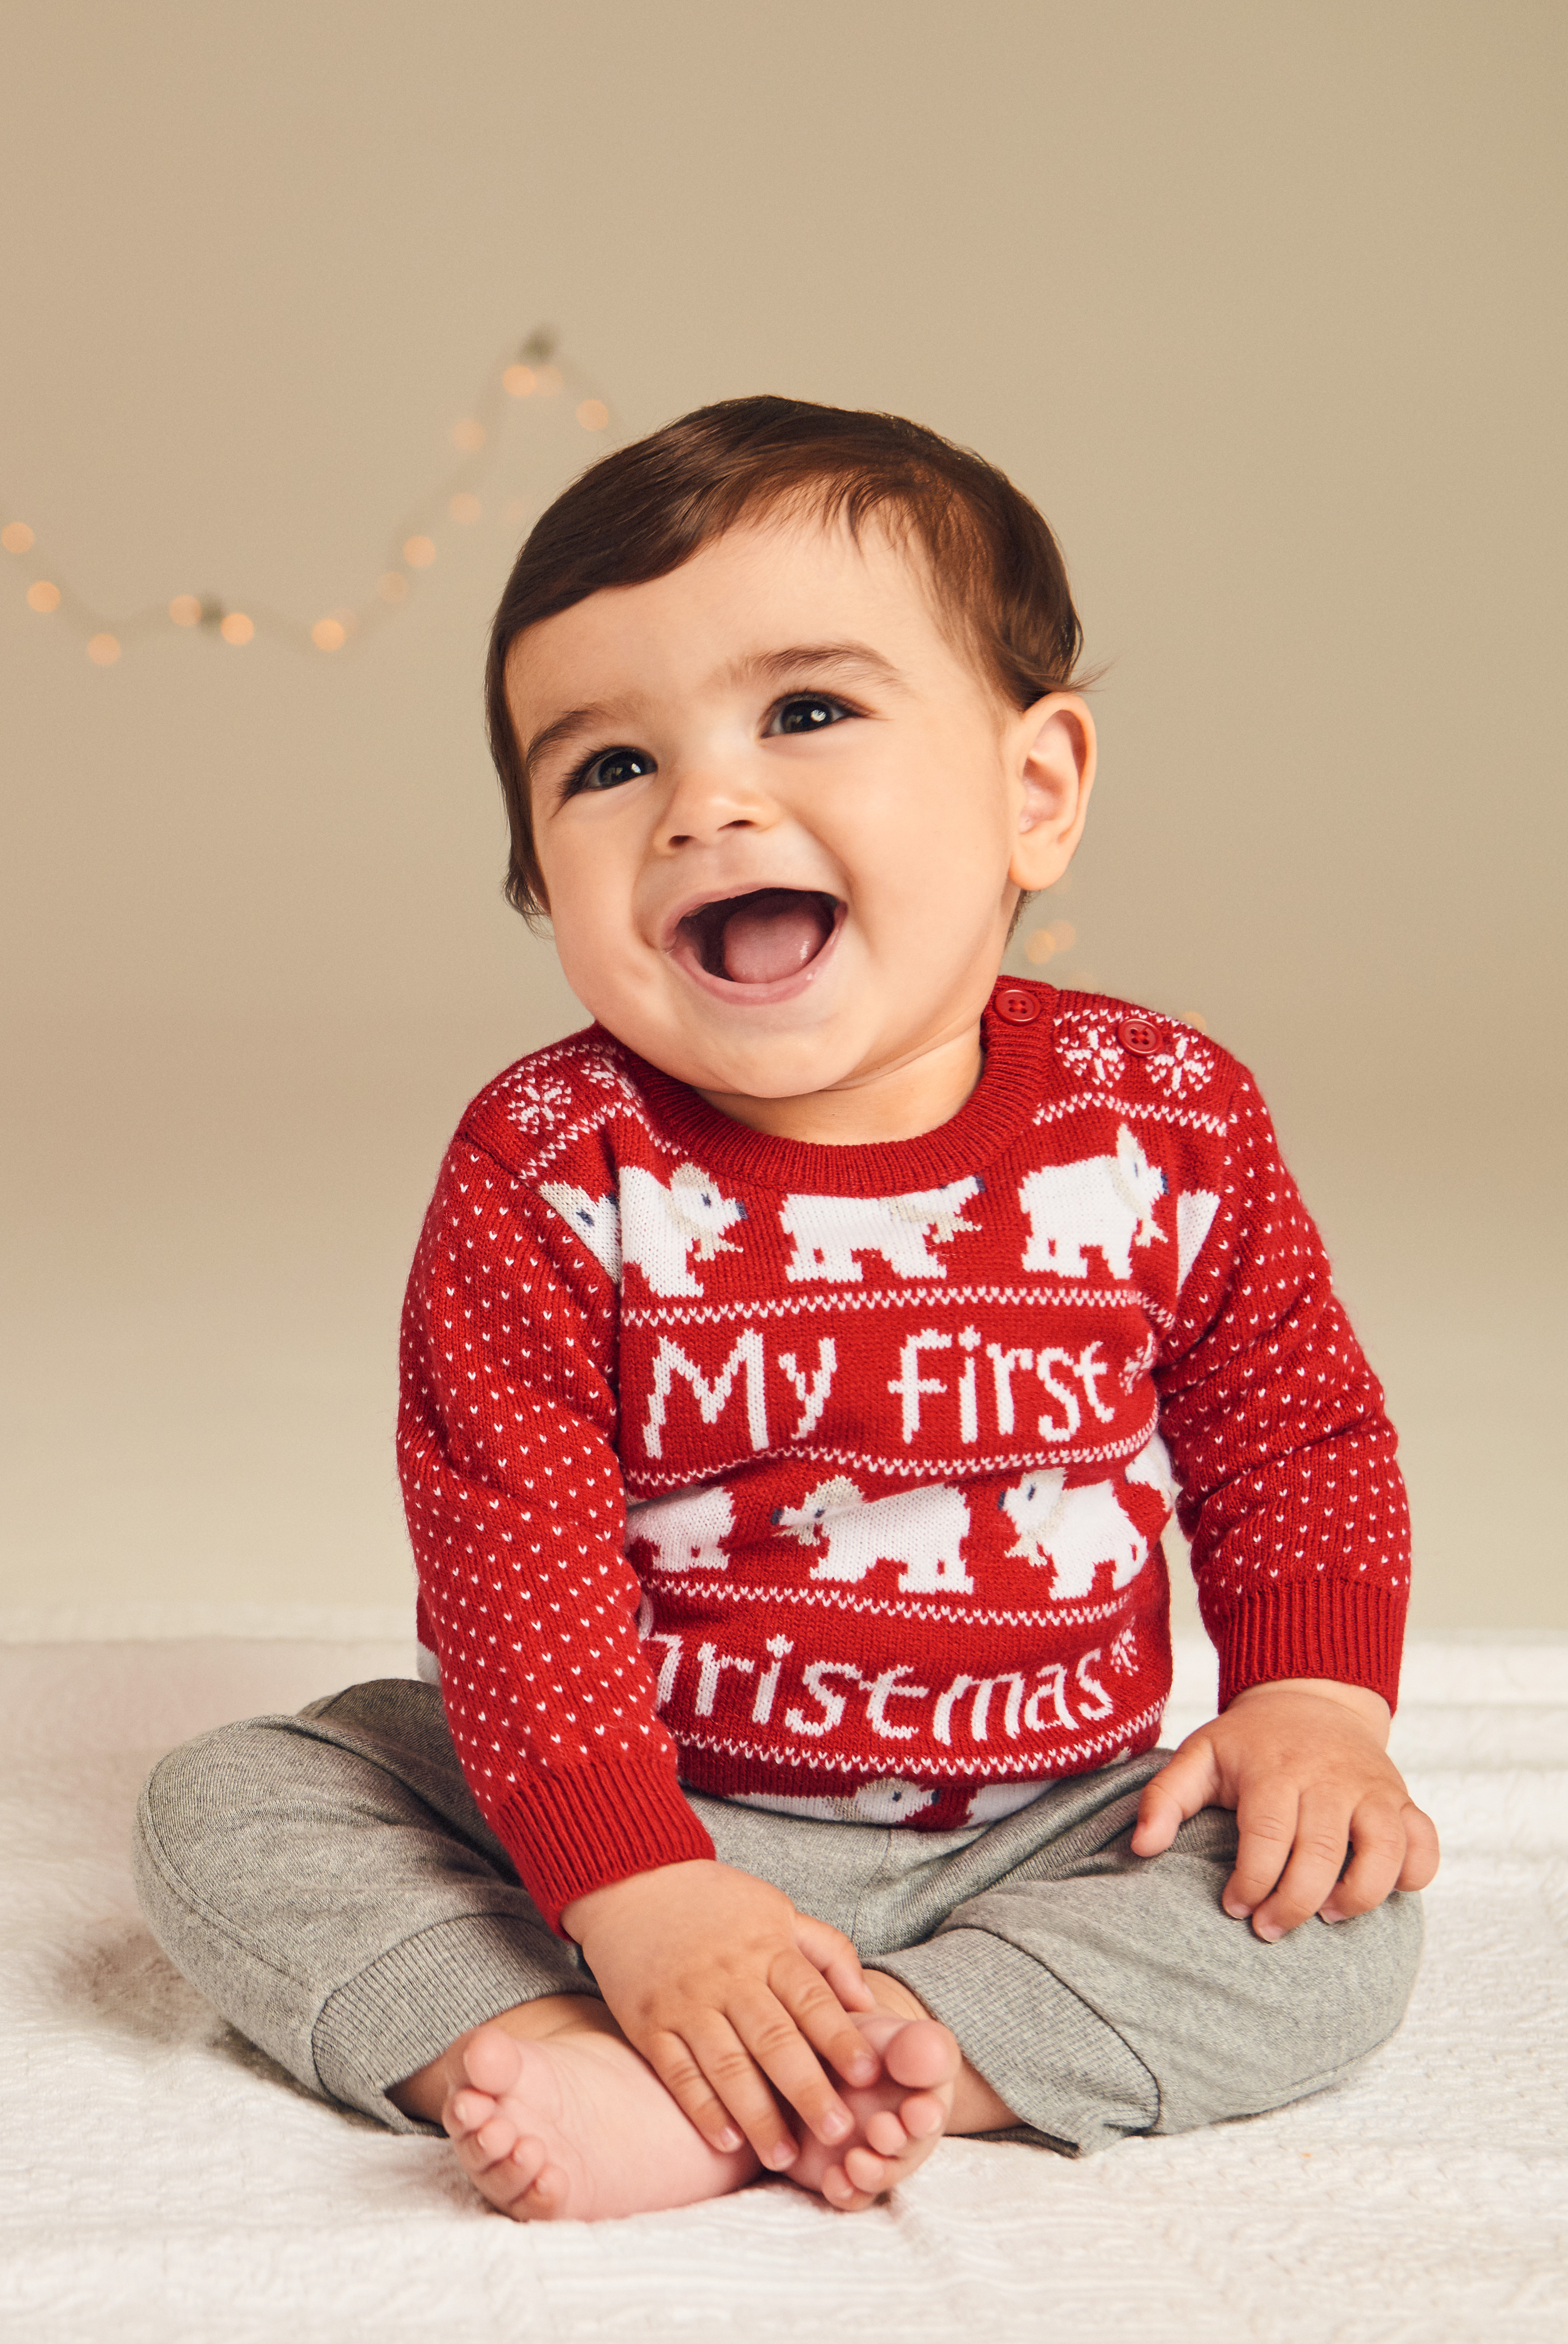 Christmas Pudding Baby Outfit.13 Adorable Baby Christmas Outfits From 6